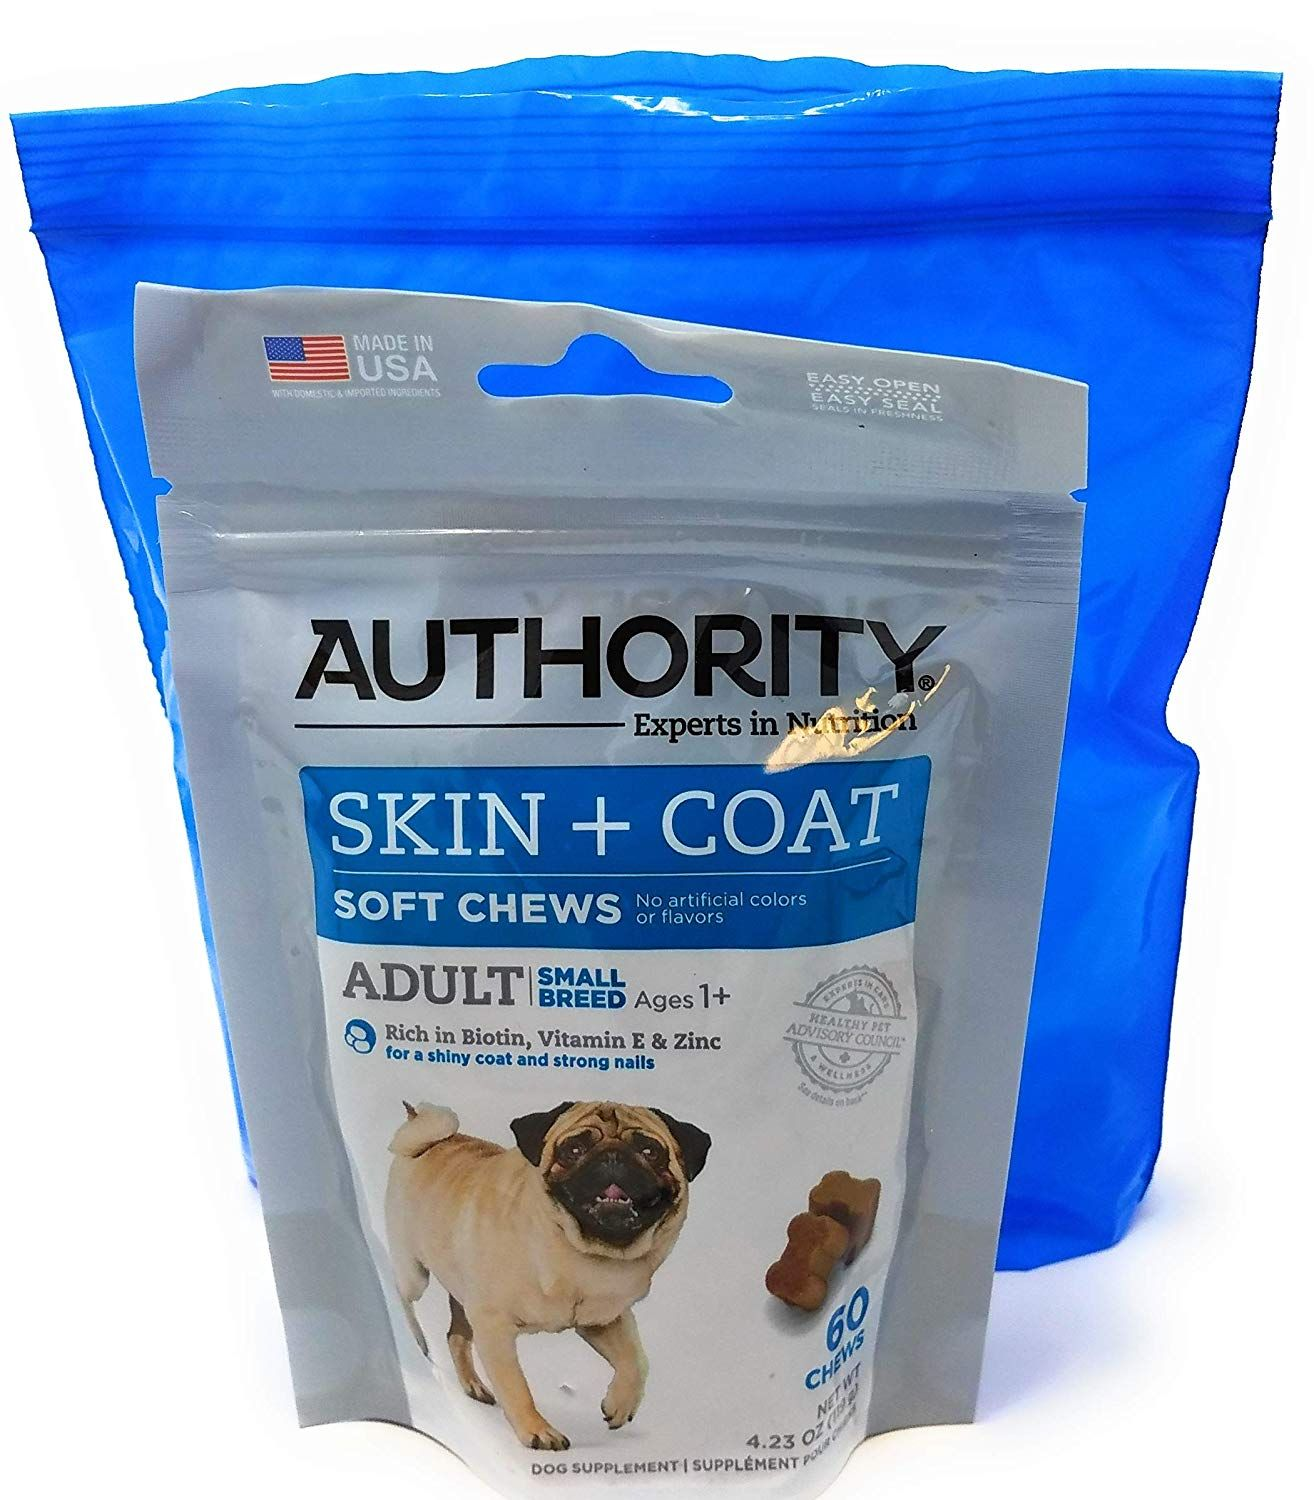 Authority Skin And Coat Soft Chews And Tesadorz Resealable Bags